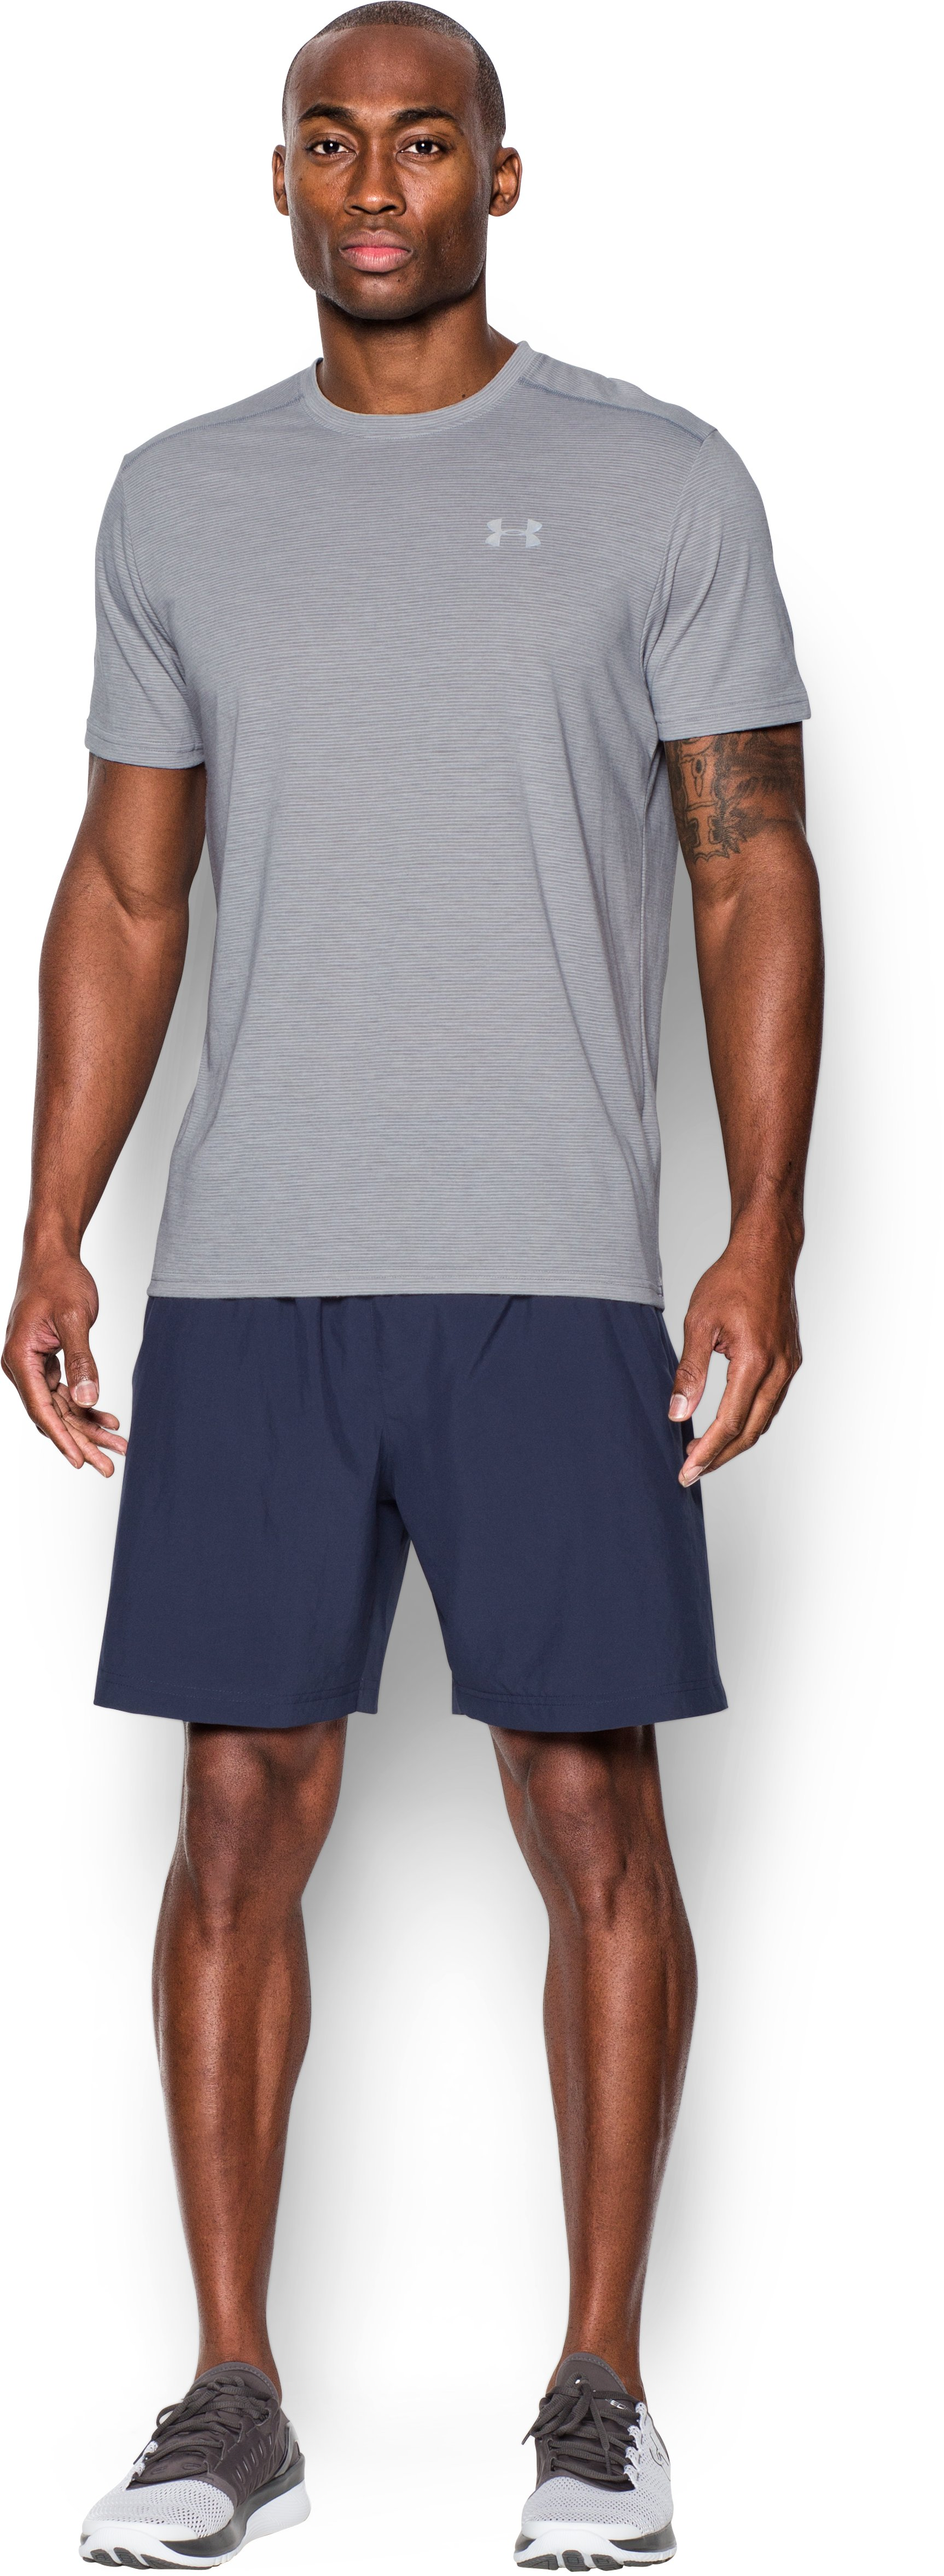 Men's UA Streaker Run Short Sleeve T-Shirt, True Gray Heather, Front